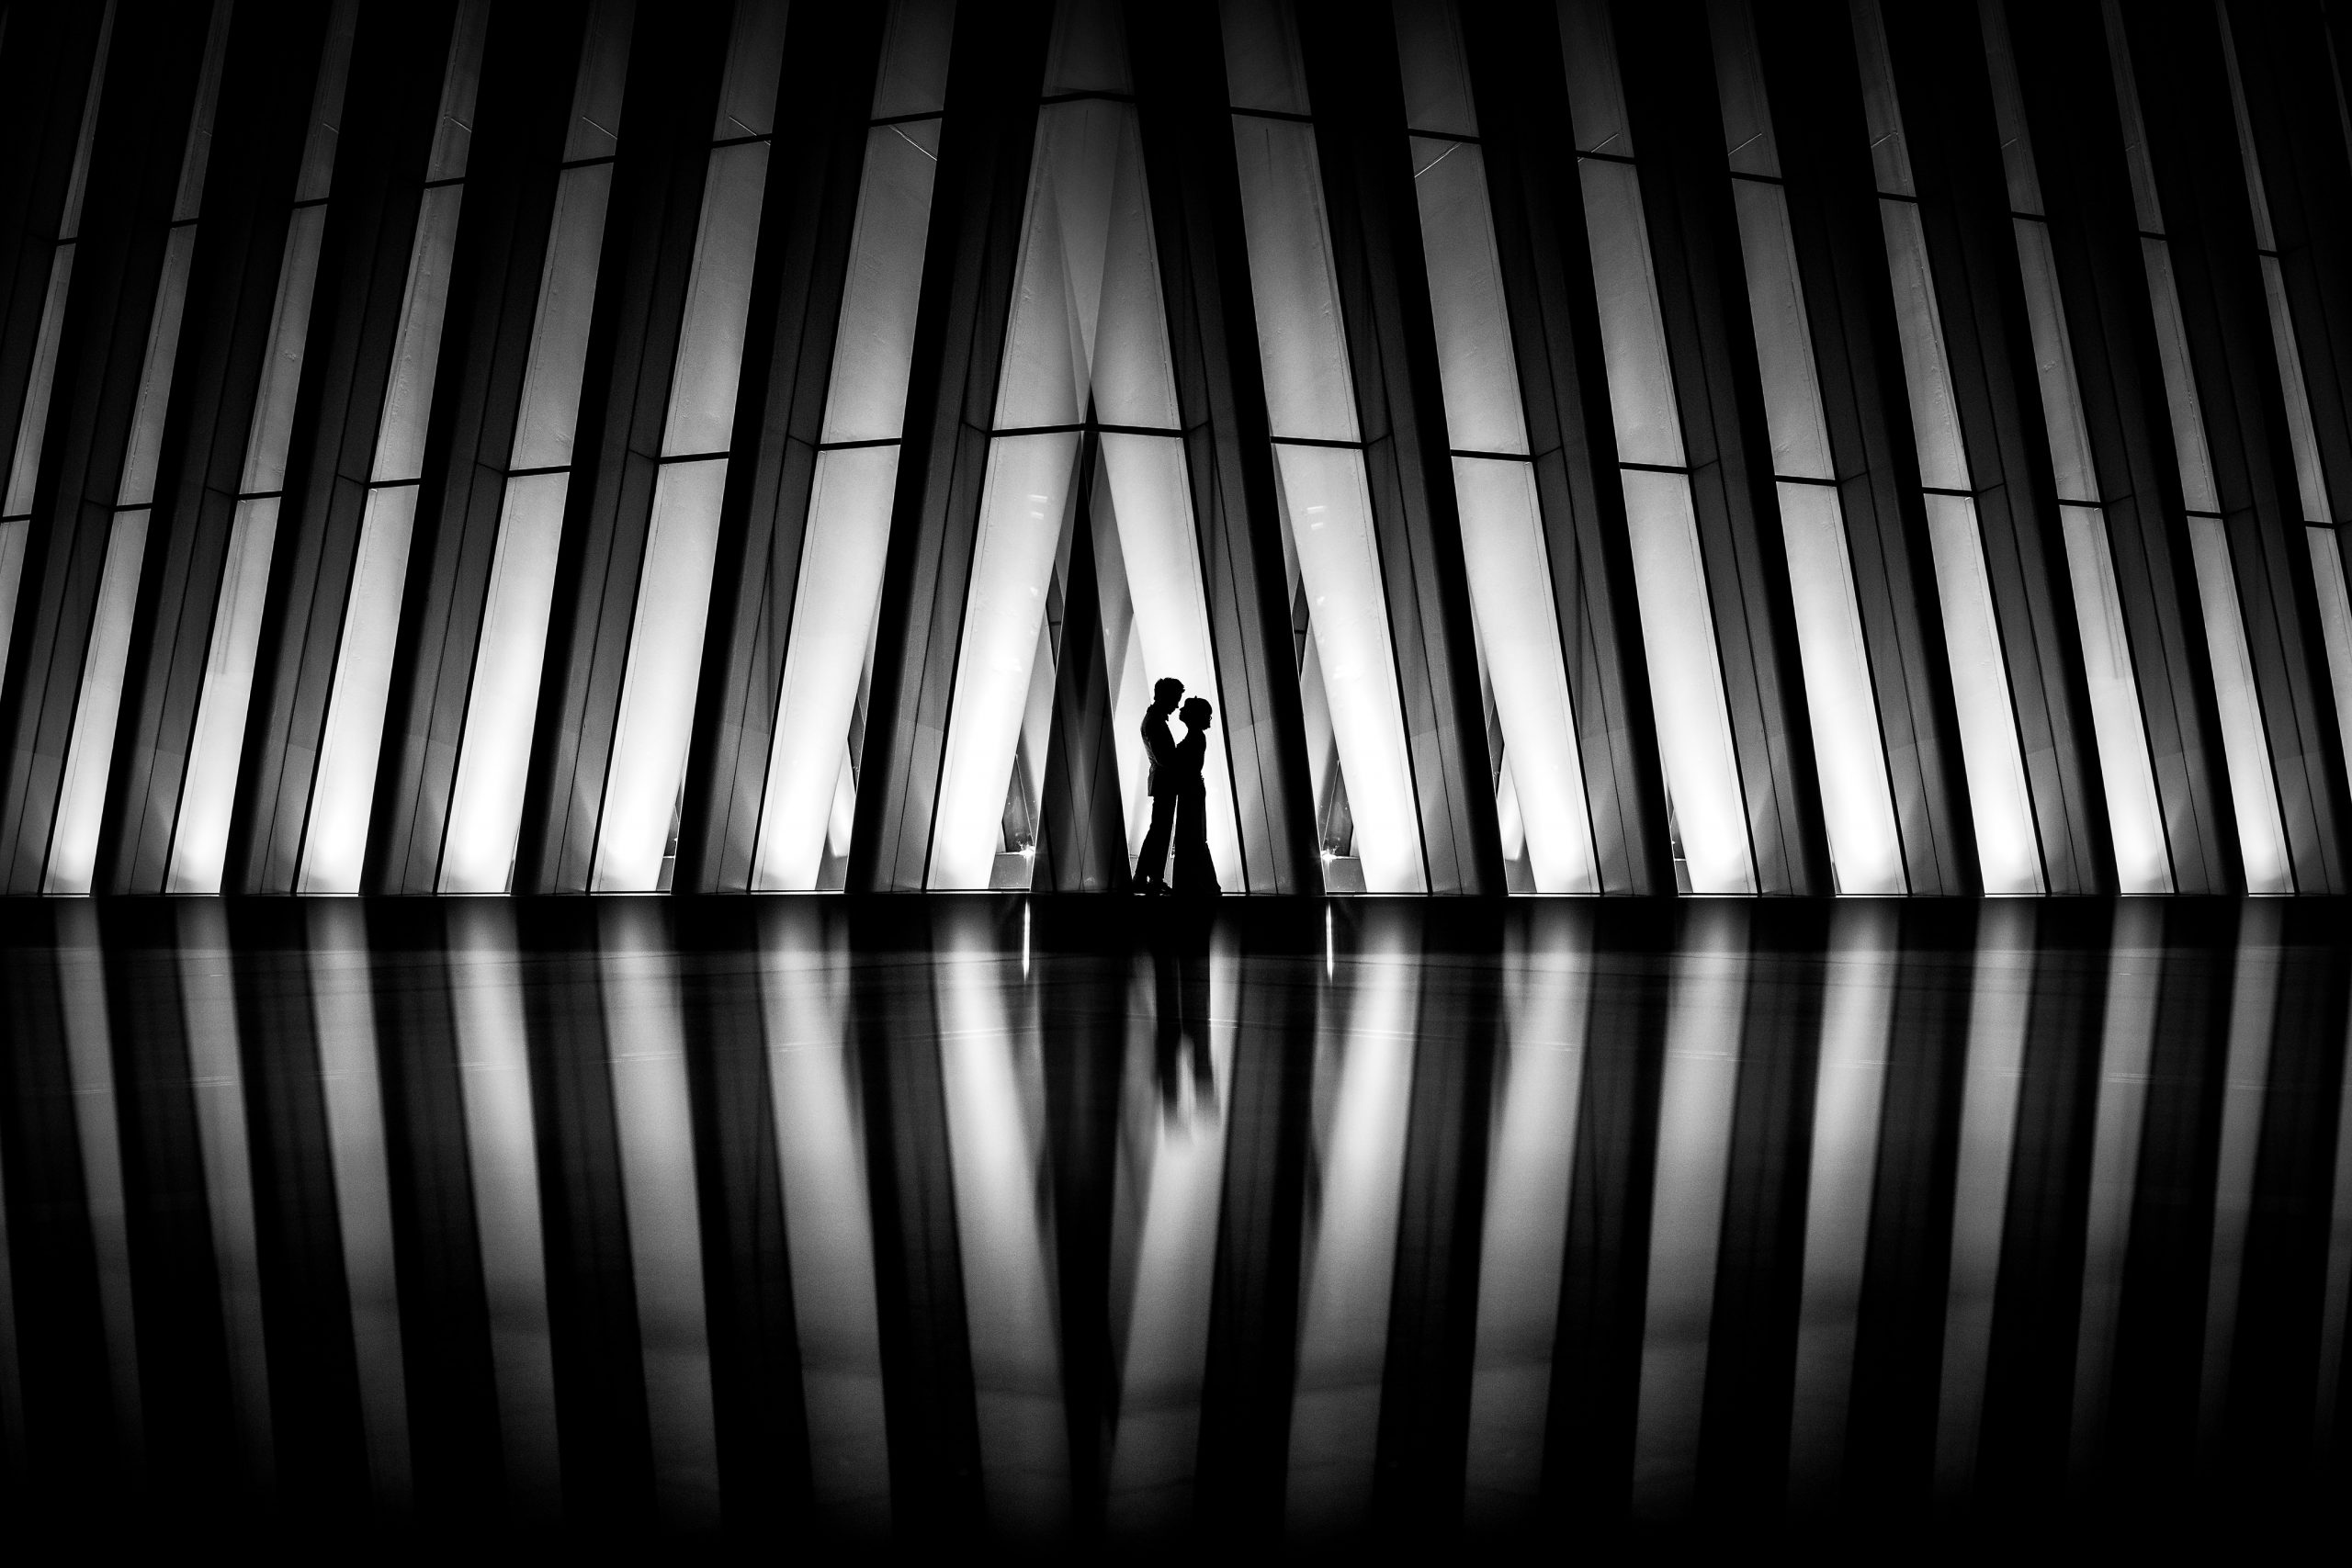 Silhouette of bride and groom embracing in front of glass panel building